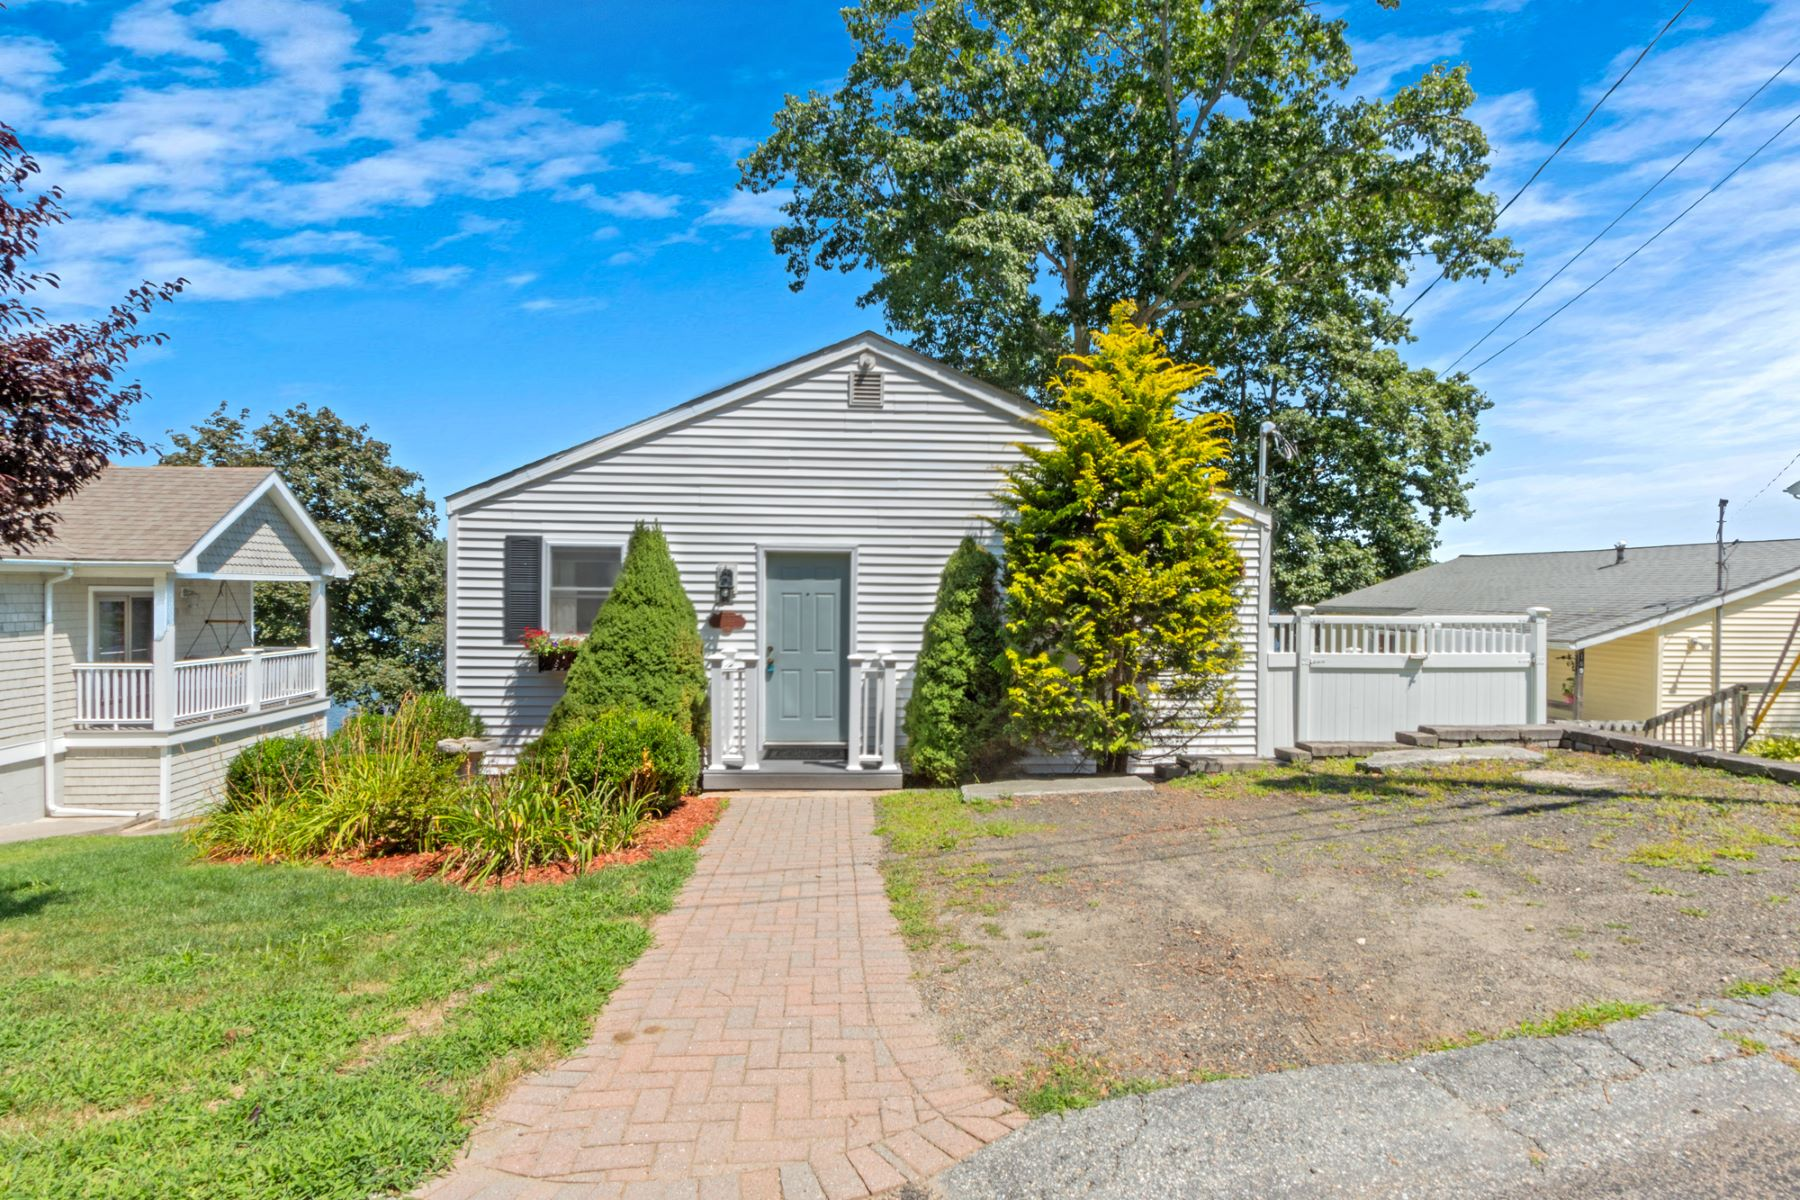 Single Family Homes for Active at Waterfront Living on Beach Pond! 165 Bennett Rd Voluntown, Connecticut 06384 United States